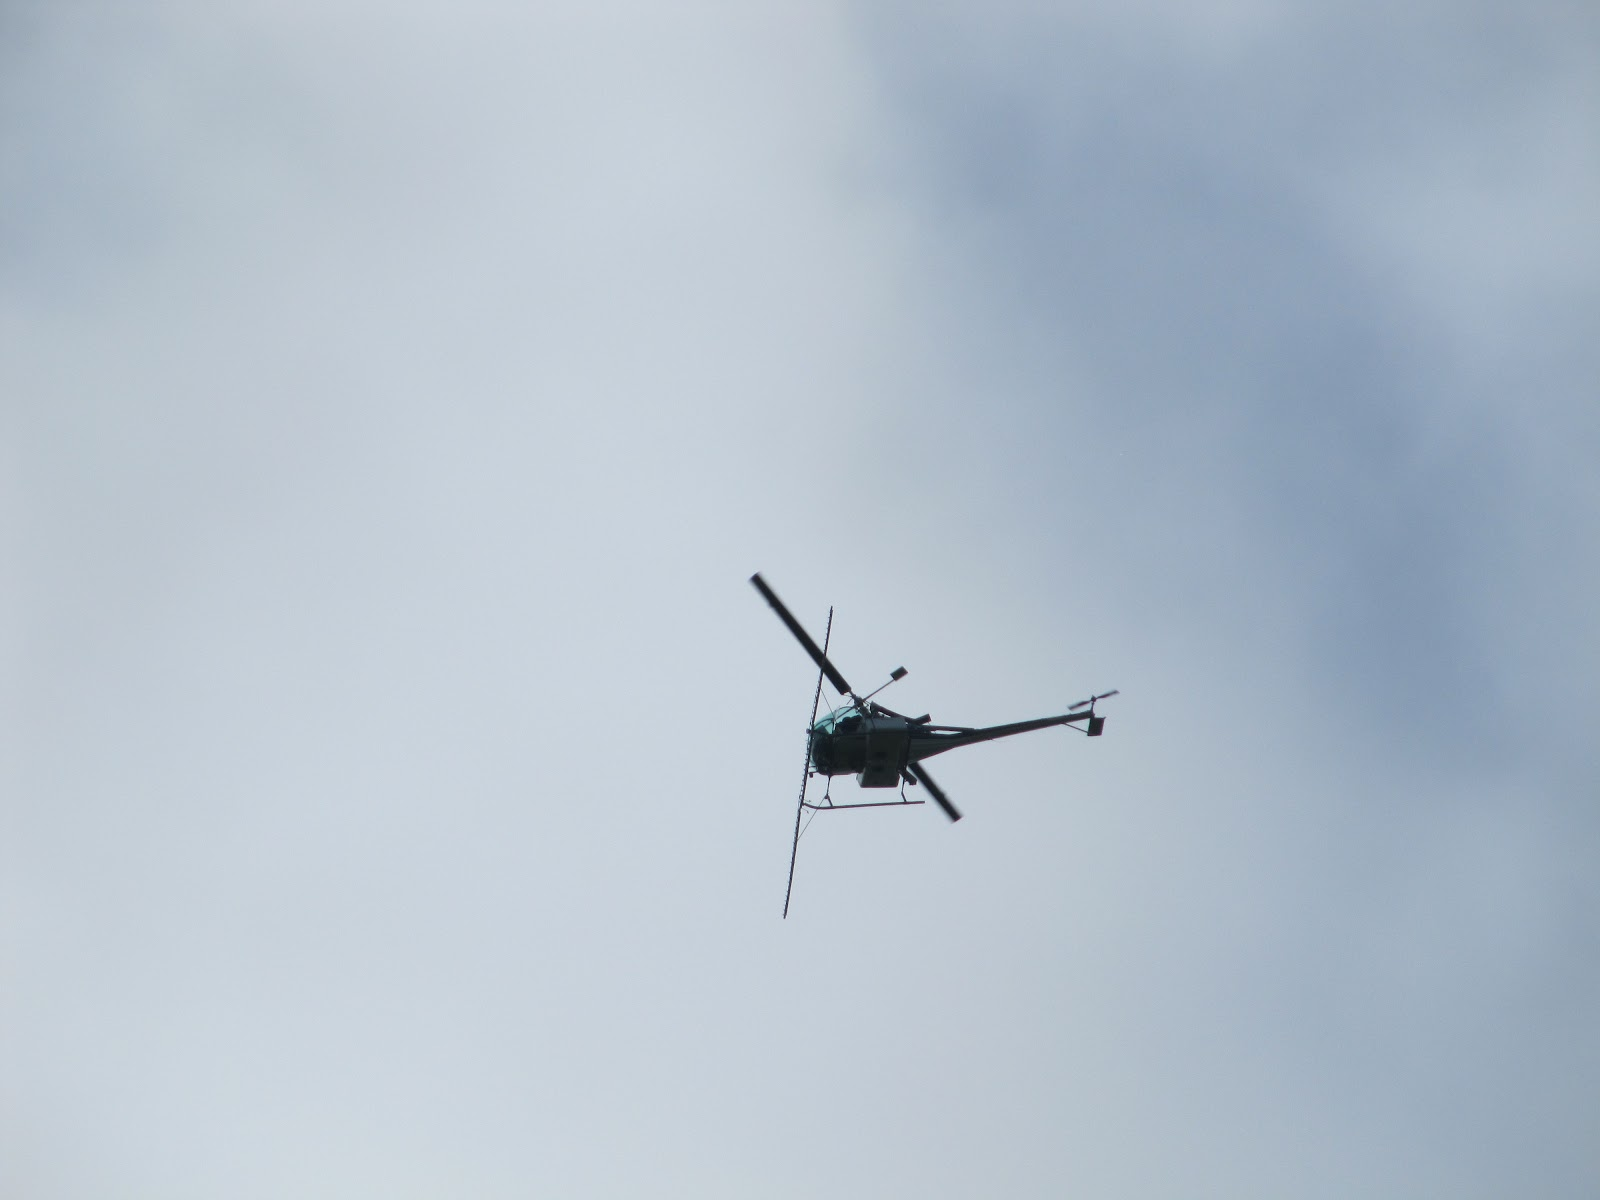 Helicopter Carrying a Horse of a Helicopter Carrying